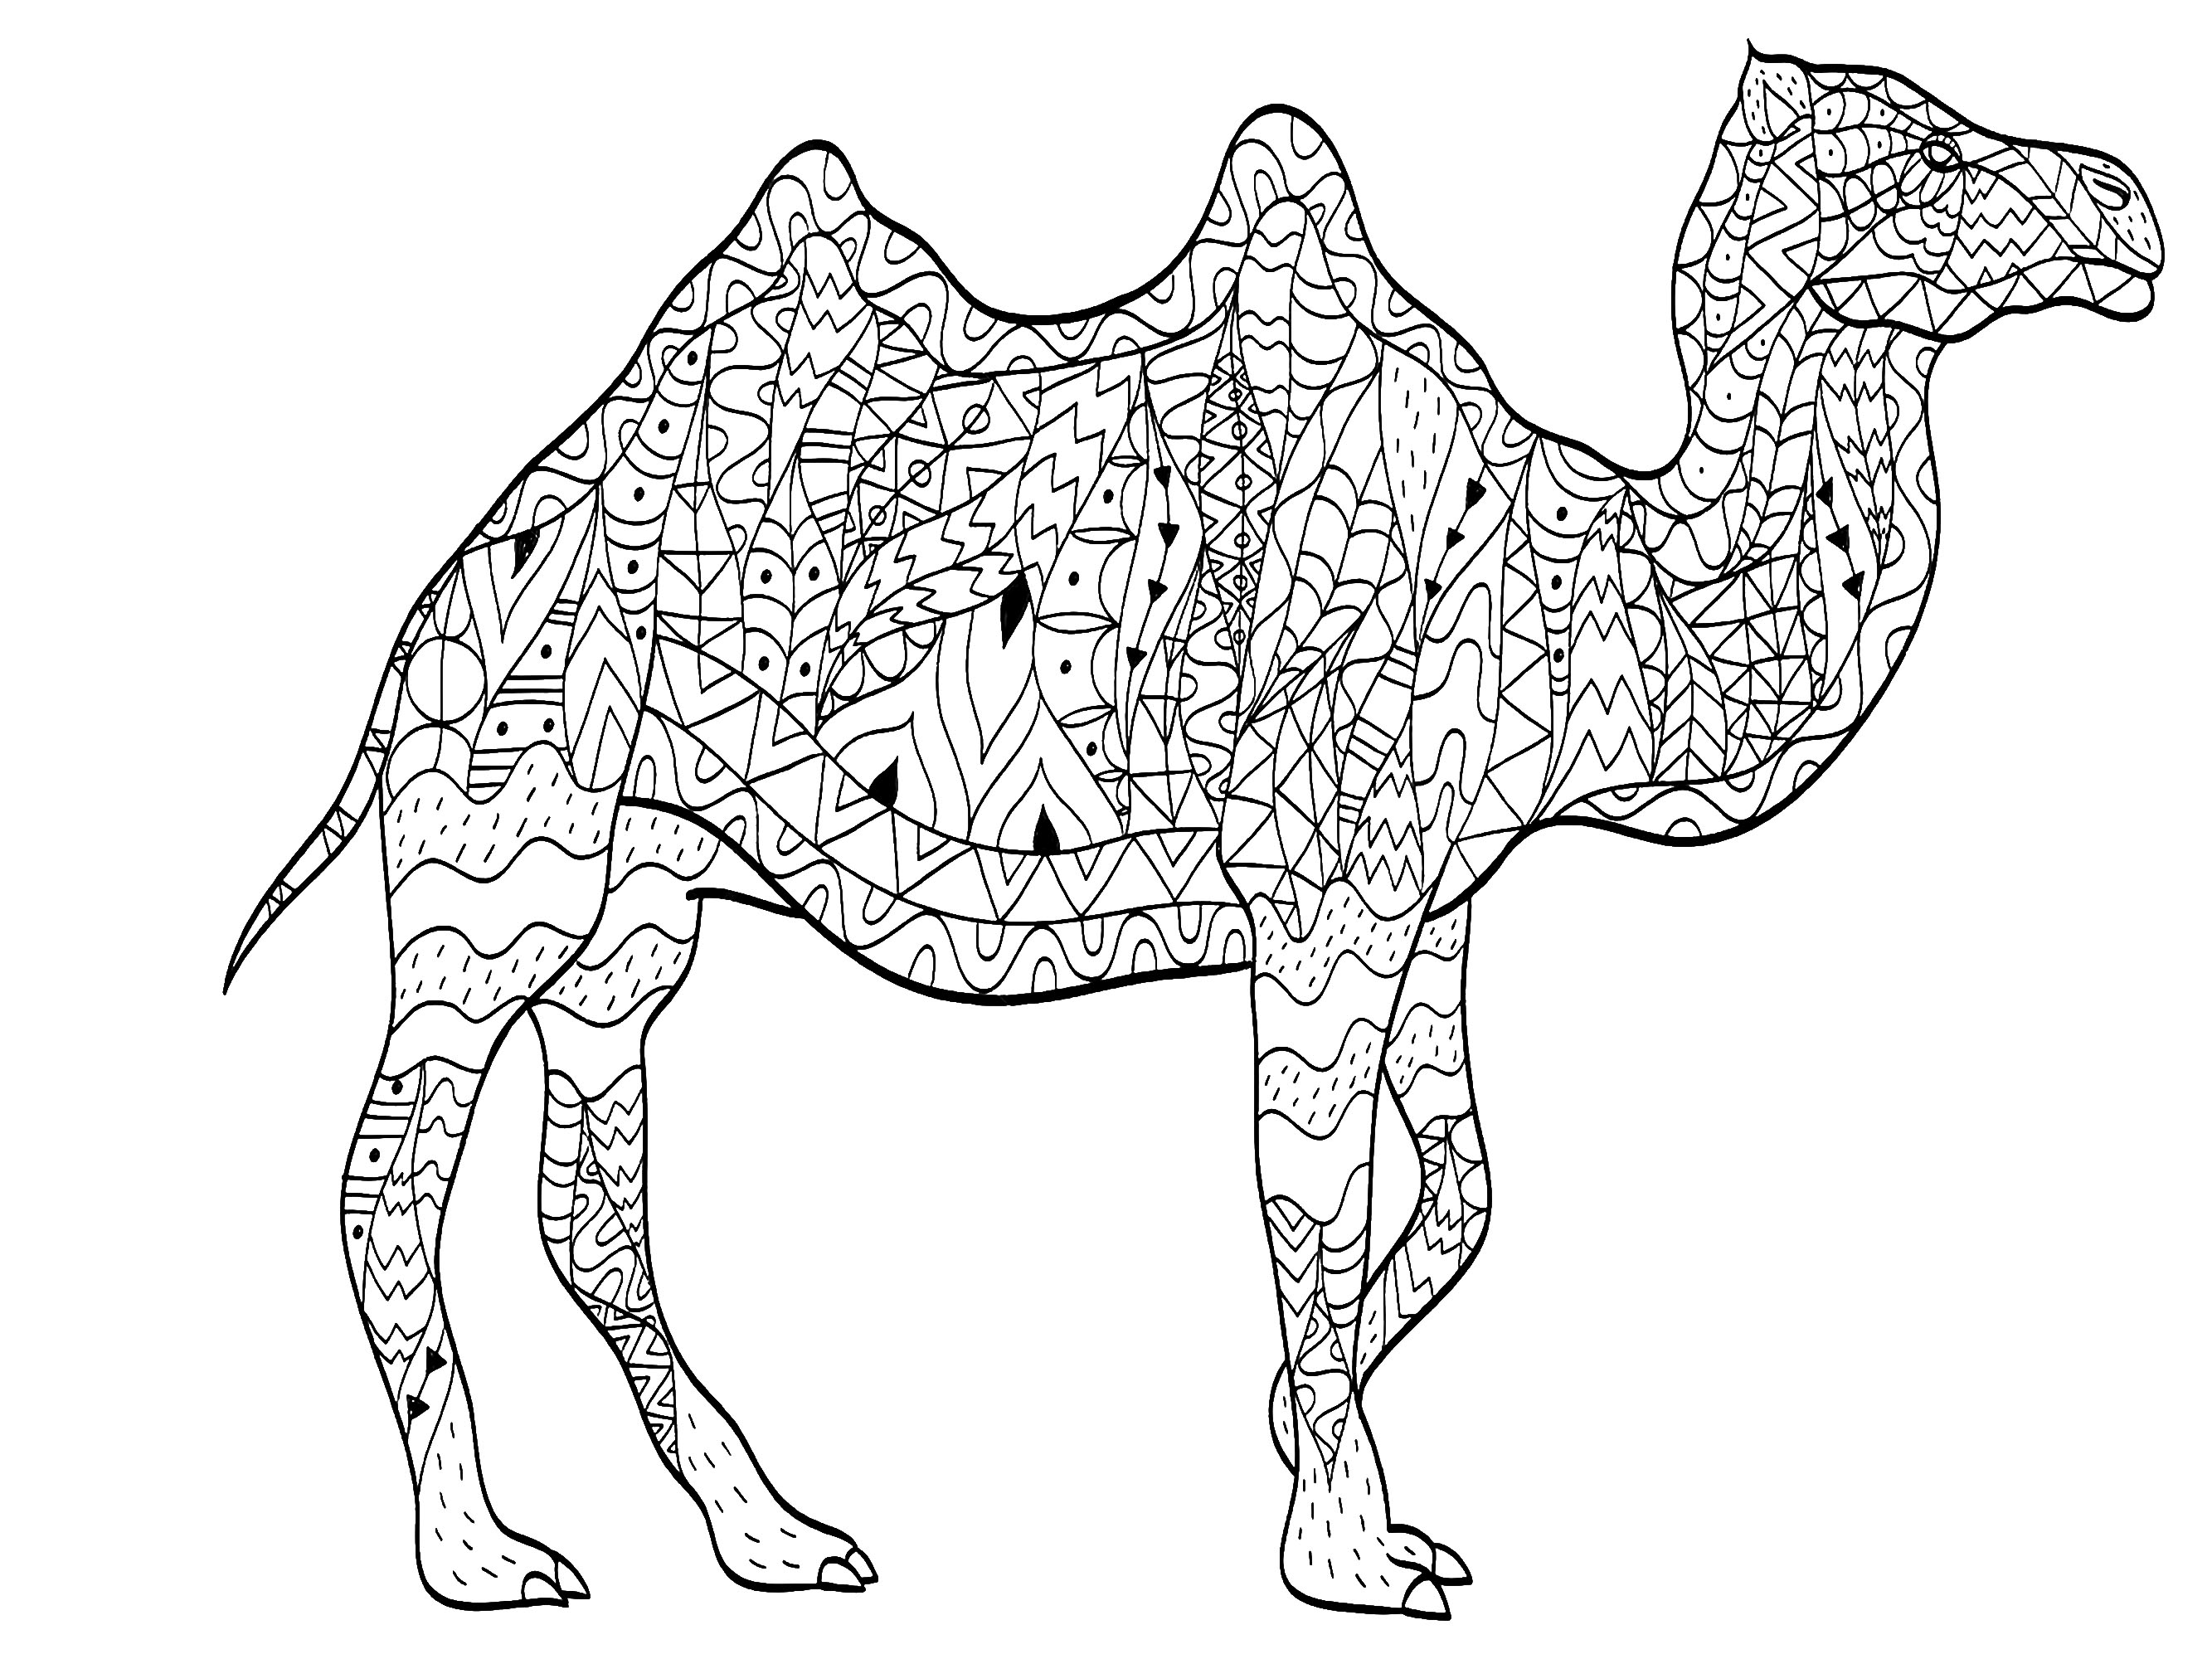 camels coloring pages camel coloring pages download and print camel coloring pages camels pages coloring